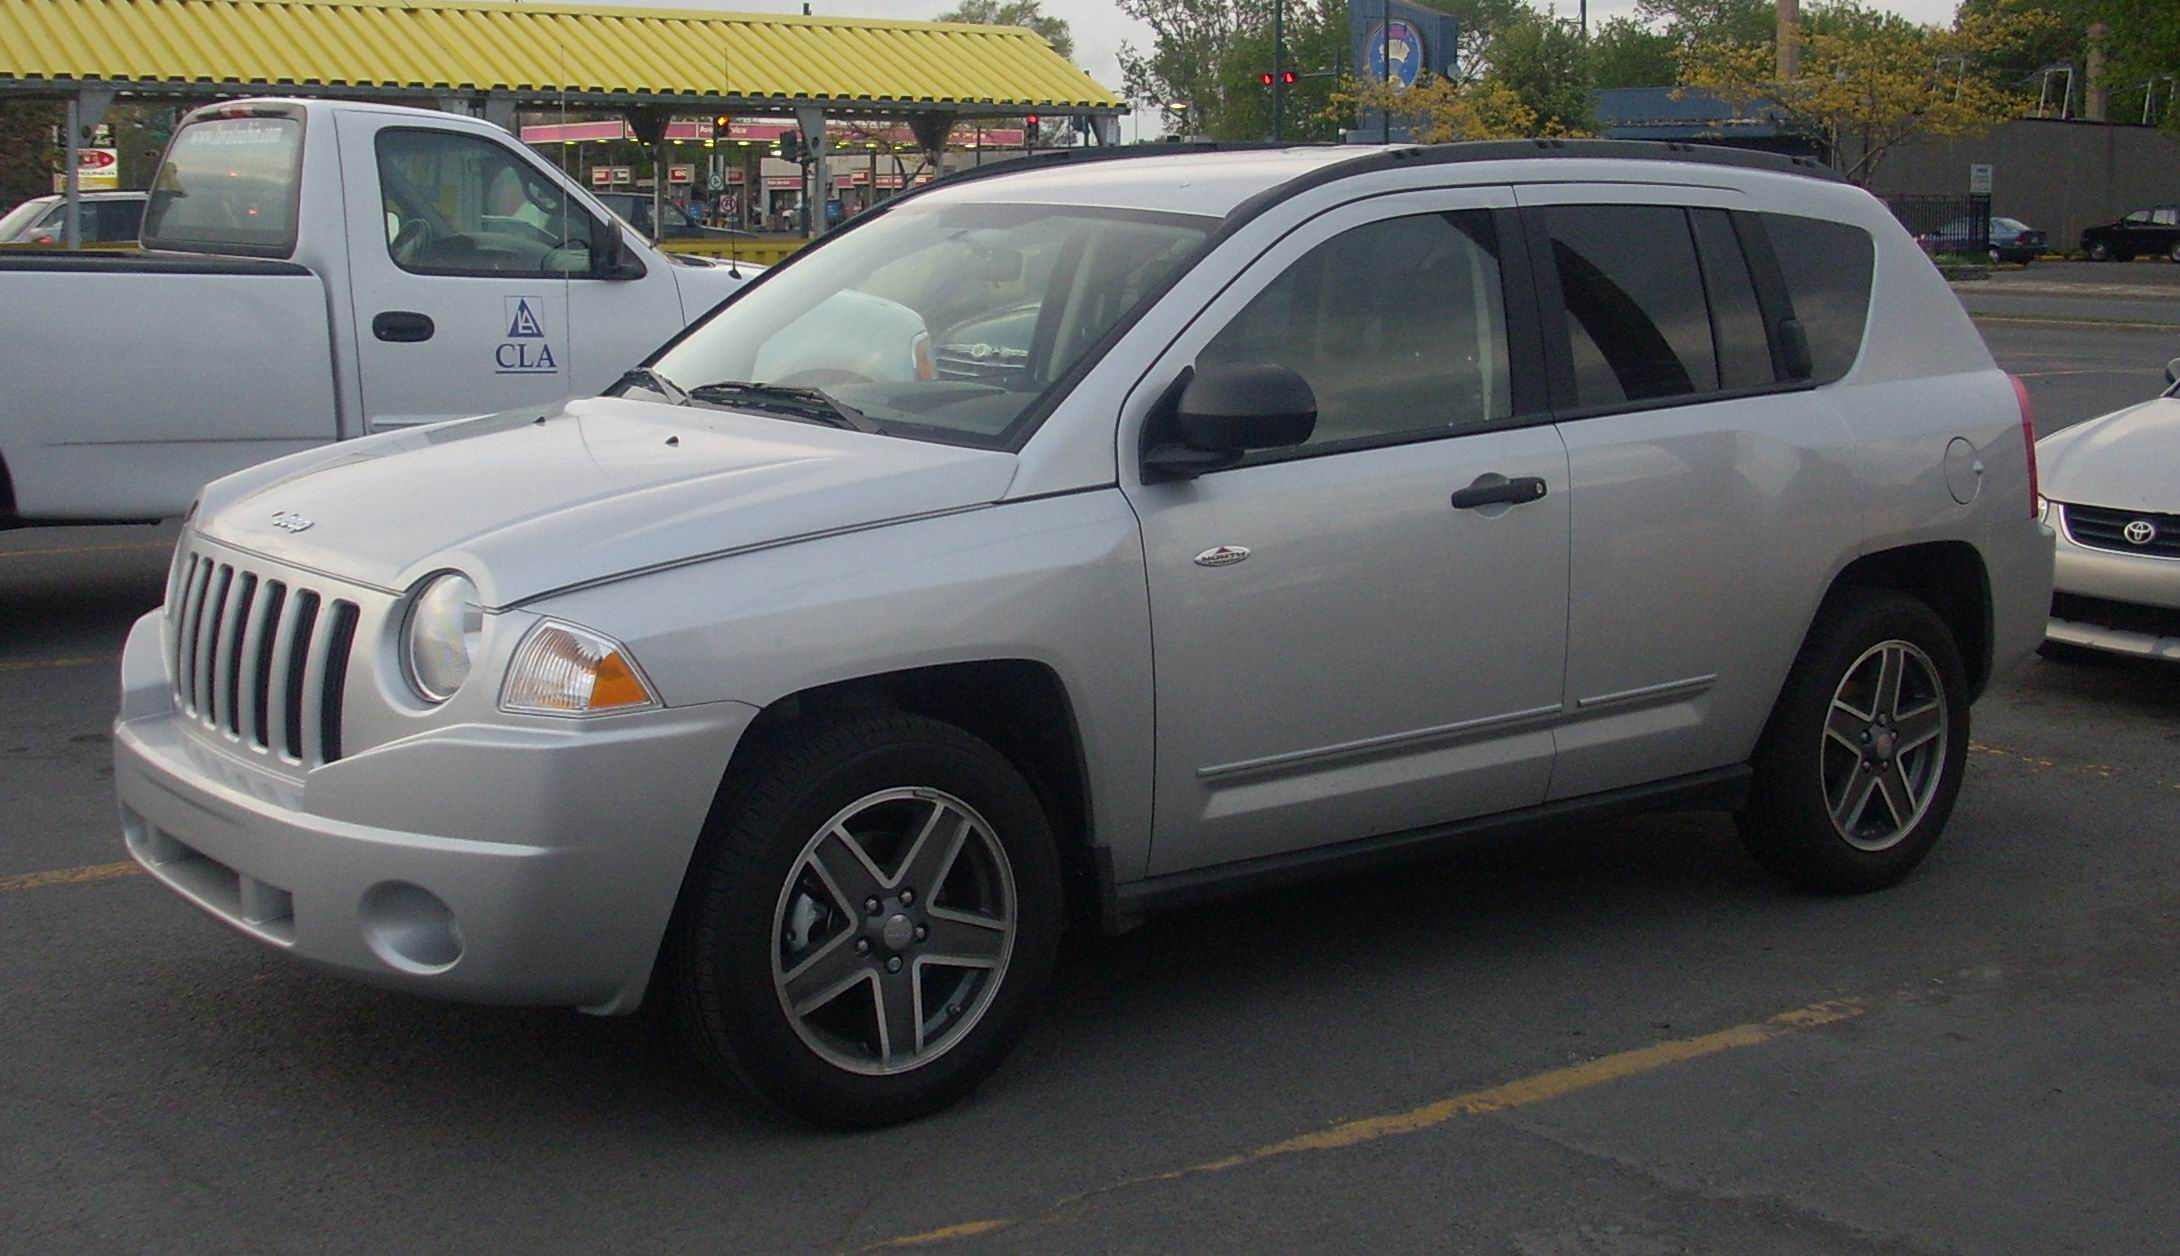 Lovely 2008 Jeep Compass #5 Jeep Compass #5